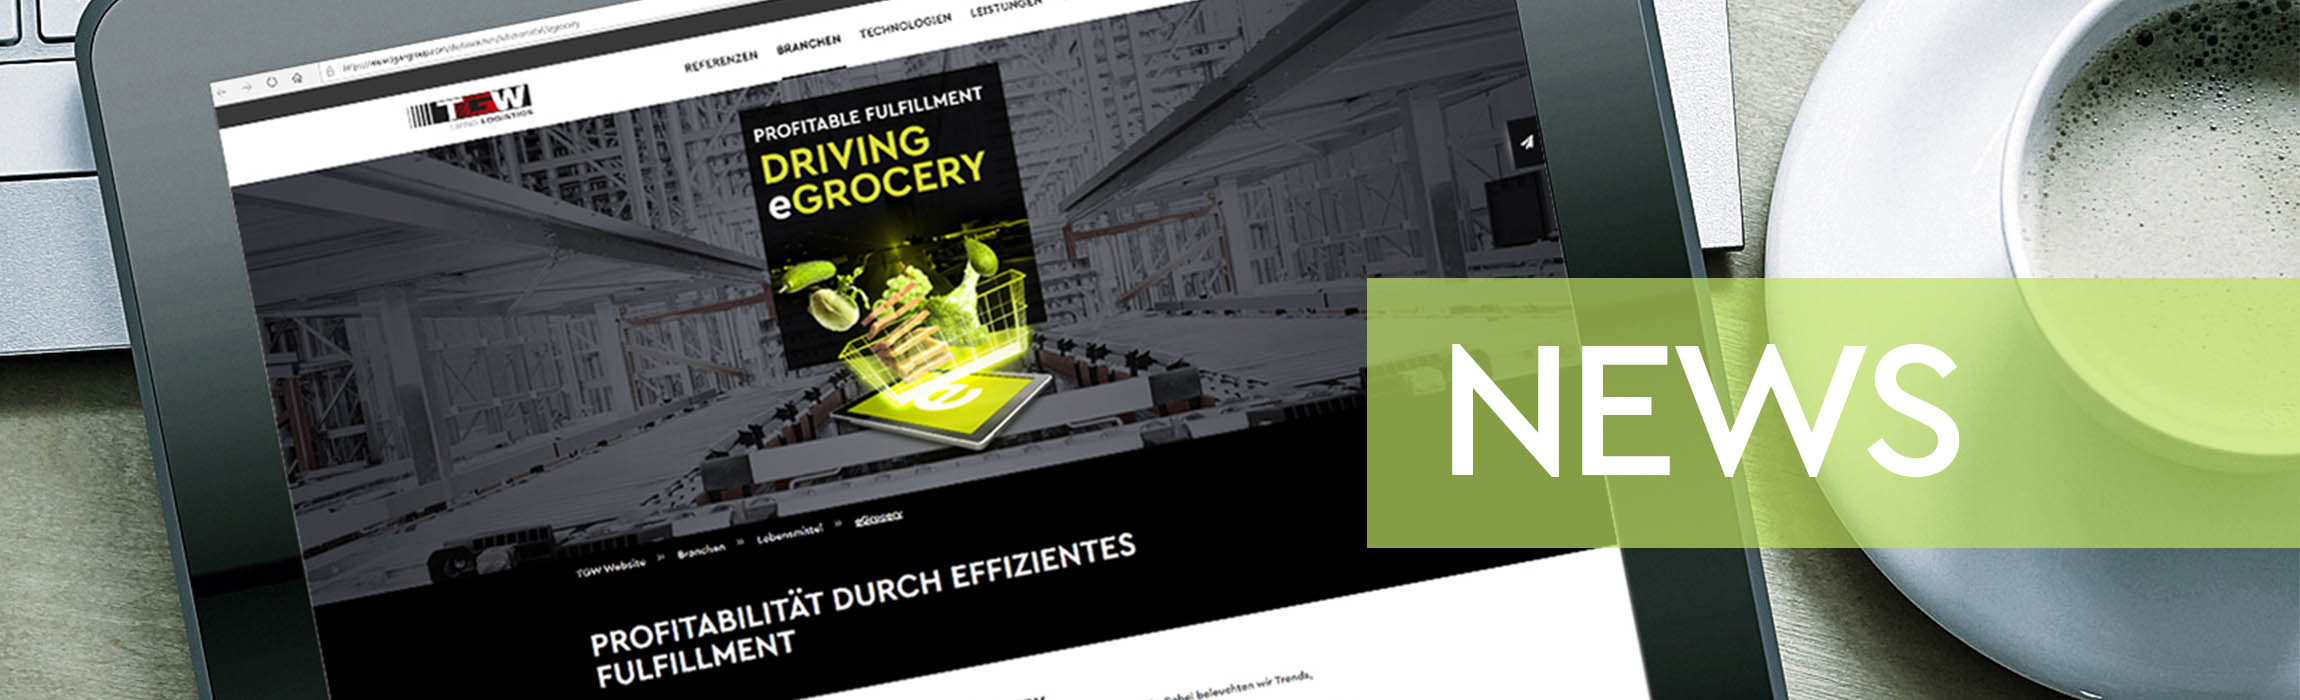 Latest eGrocery news and trends from the world of online grocery.